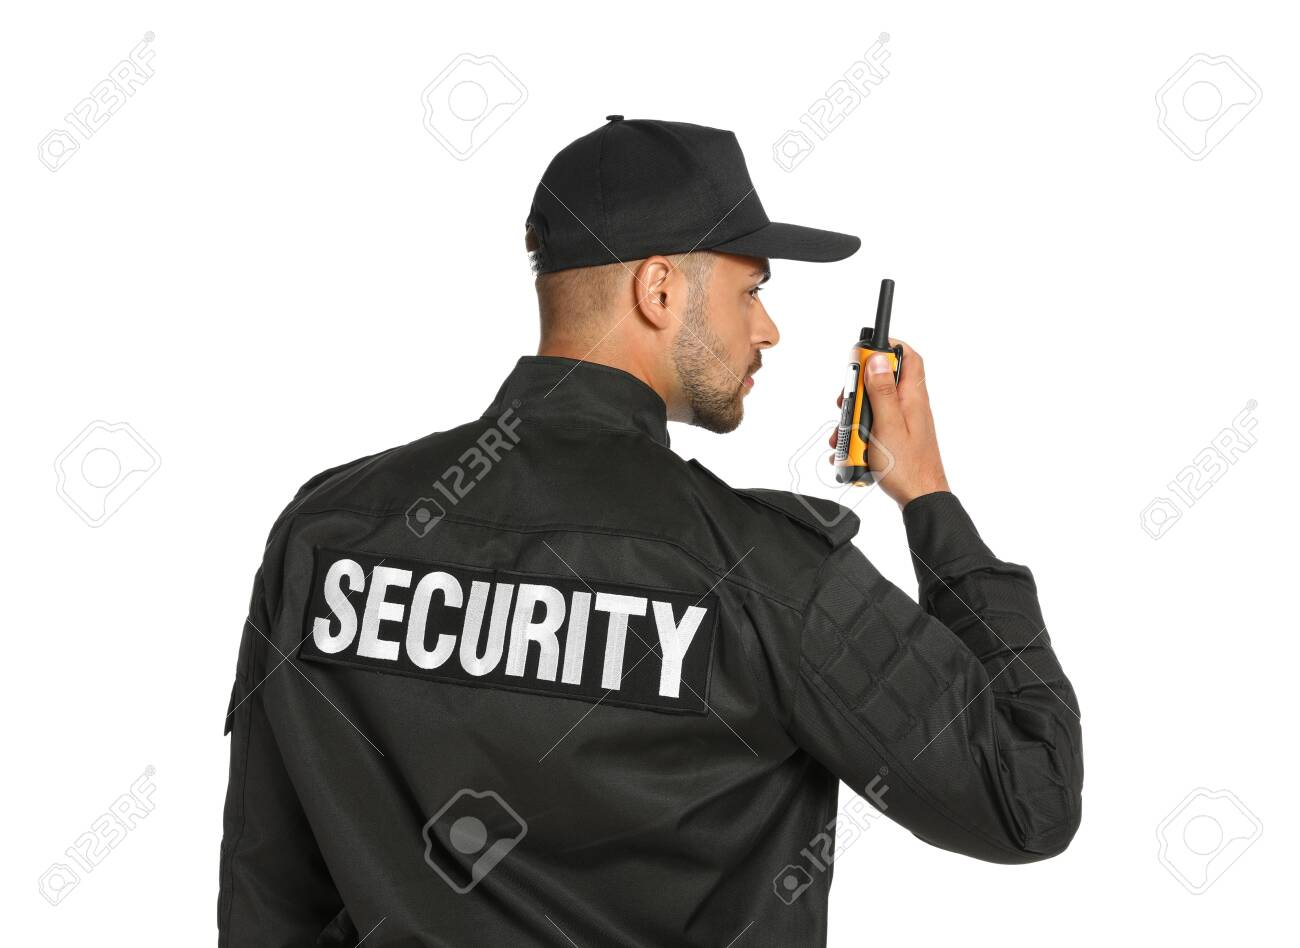 Male security guard in uniform using portable radio transmitter on white background - 129030450